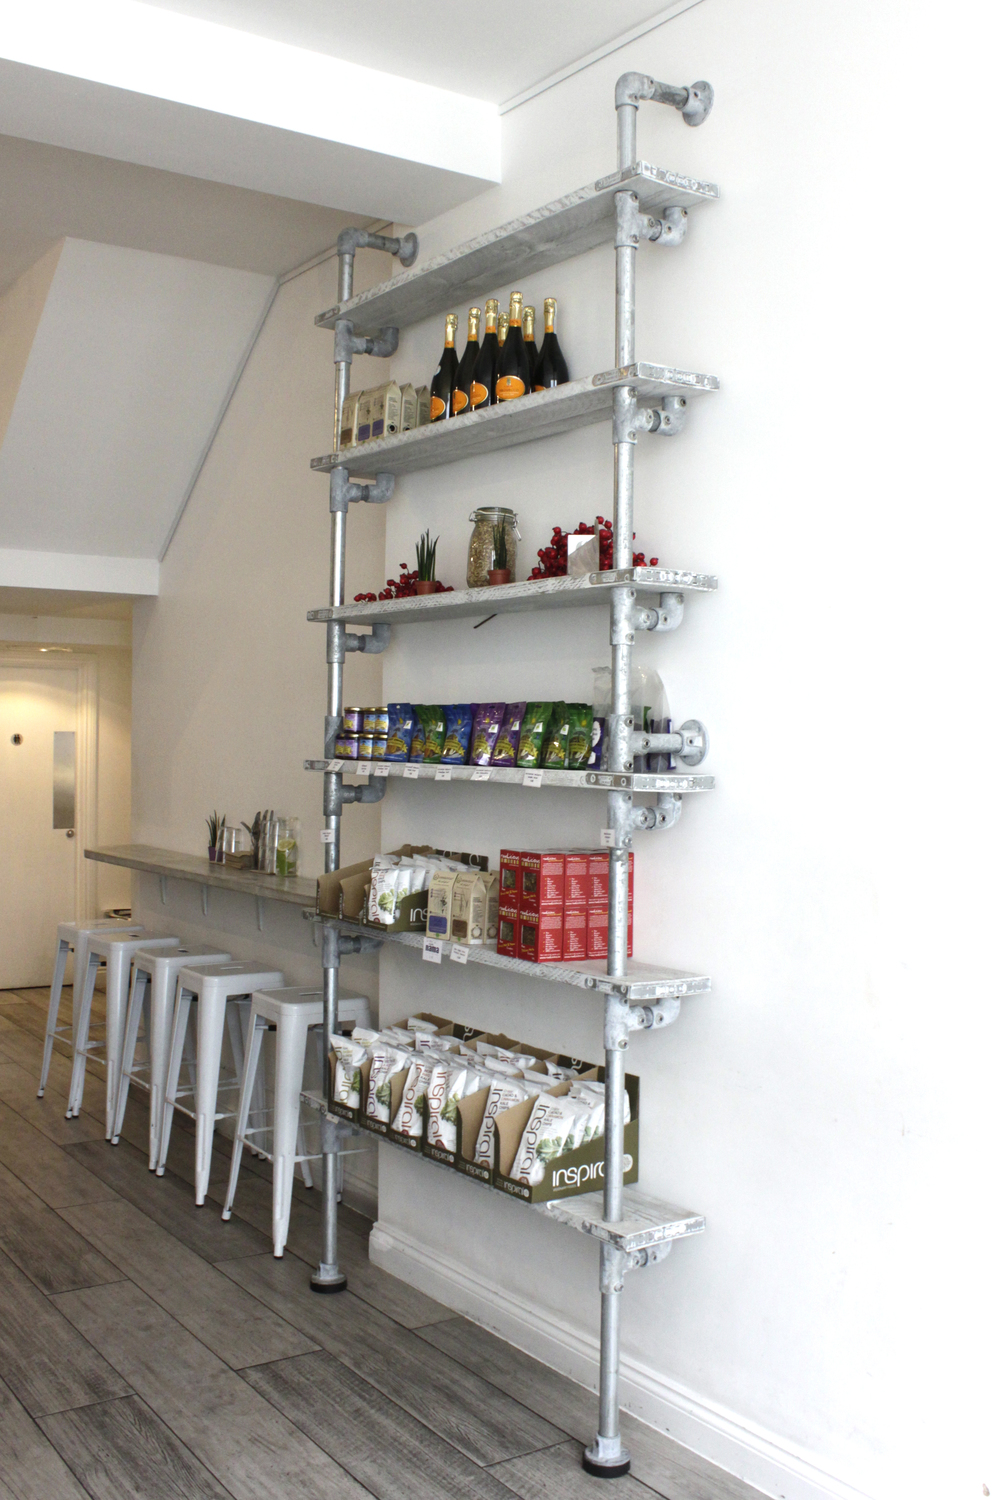 reclaimed tables and scaffolding shelving unit for Nama, Notting Hill, 2014